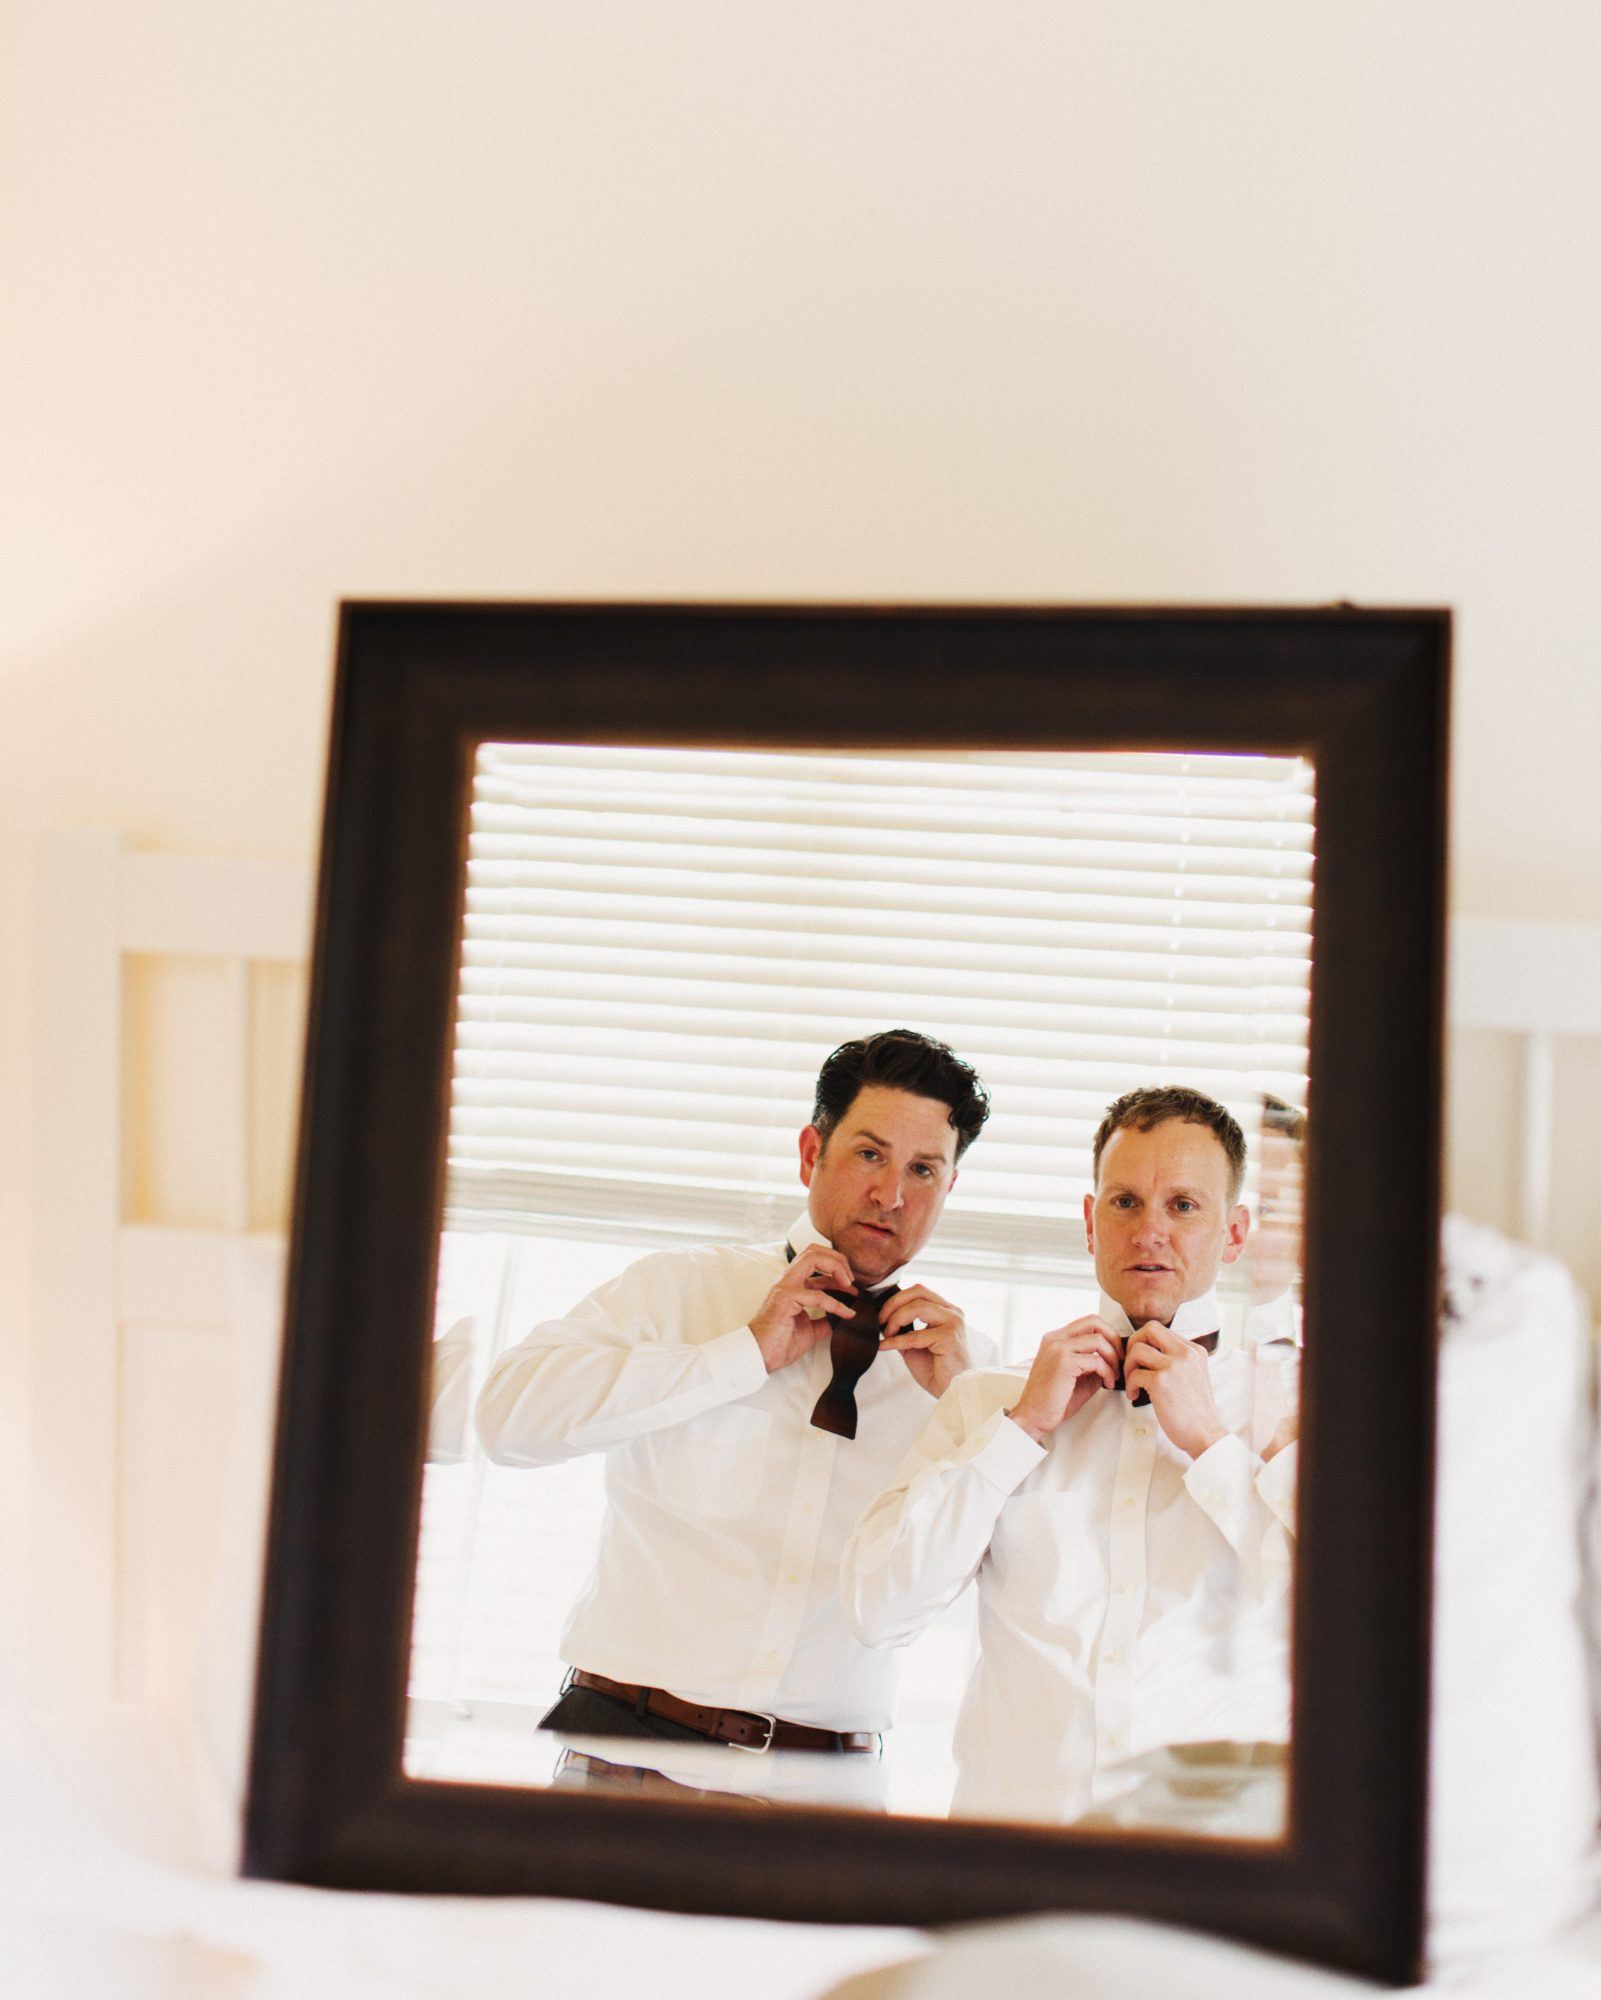 craig-andrew-wedding-gettingready-031-s111833-0215.jpg